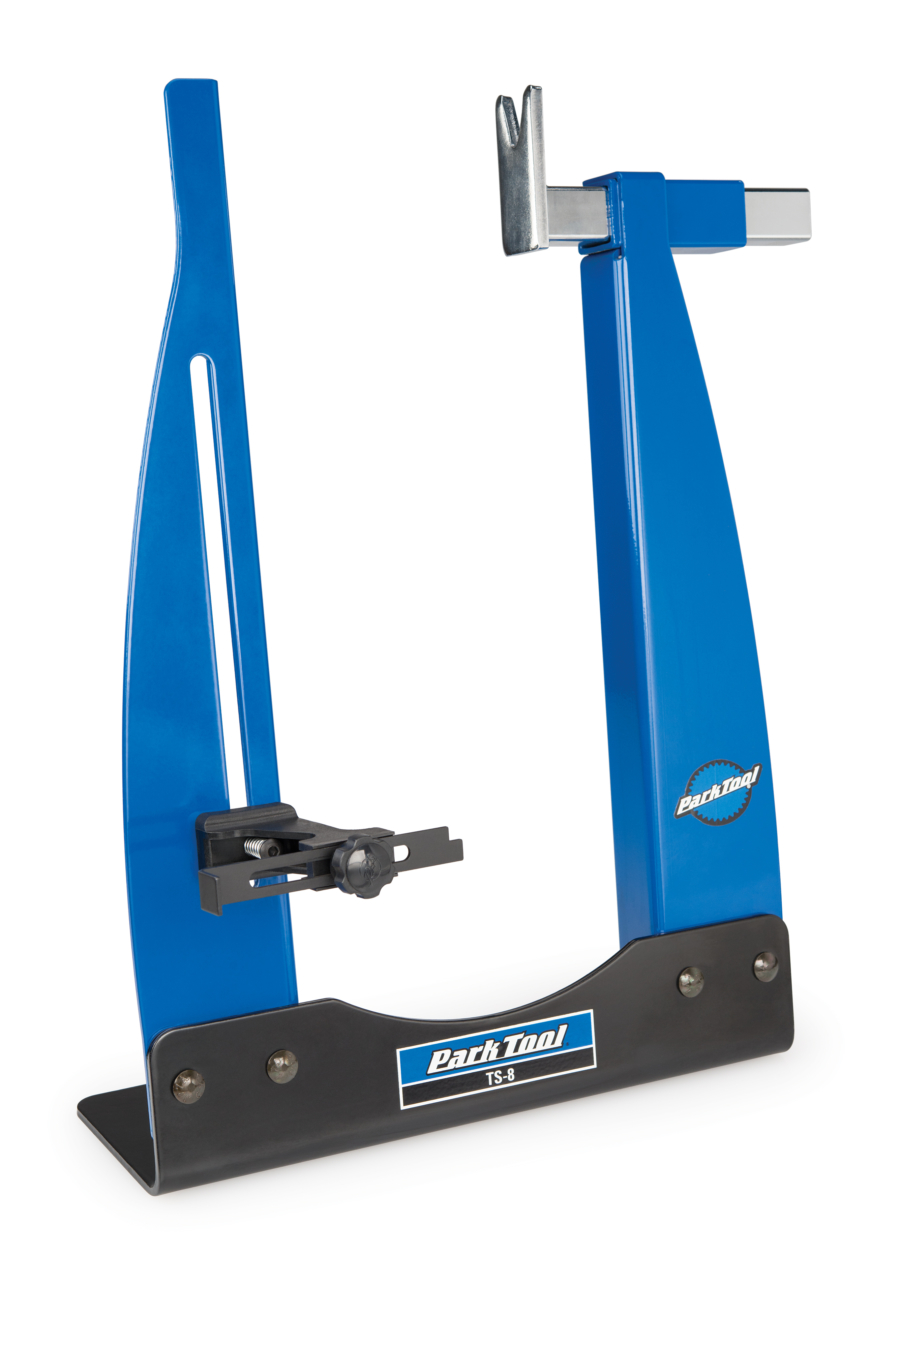 The Park Tool TS-8 Home Mechanic Wheel Truing Stand, enlarged